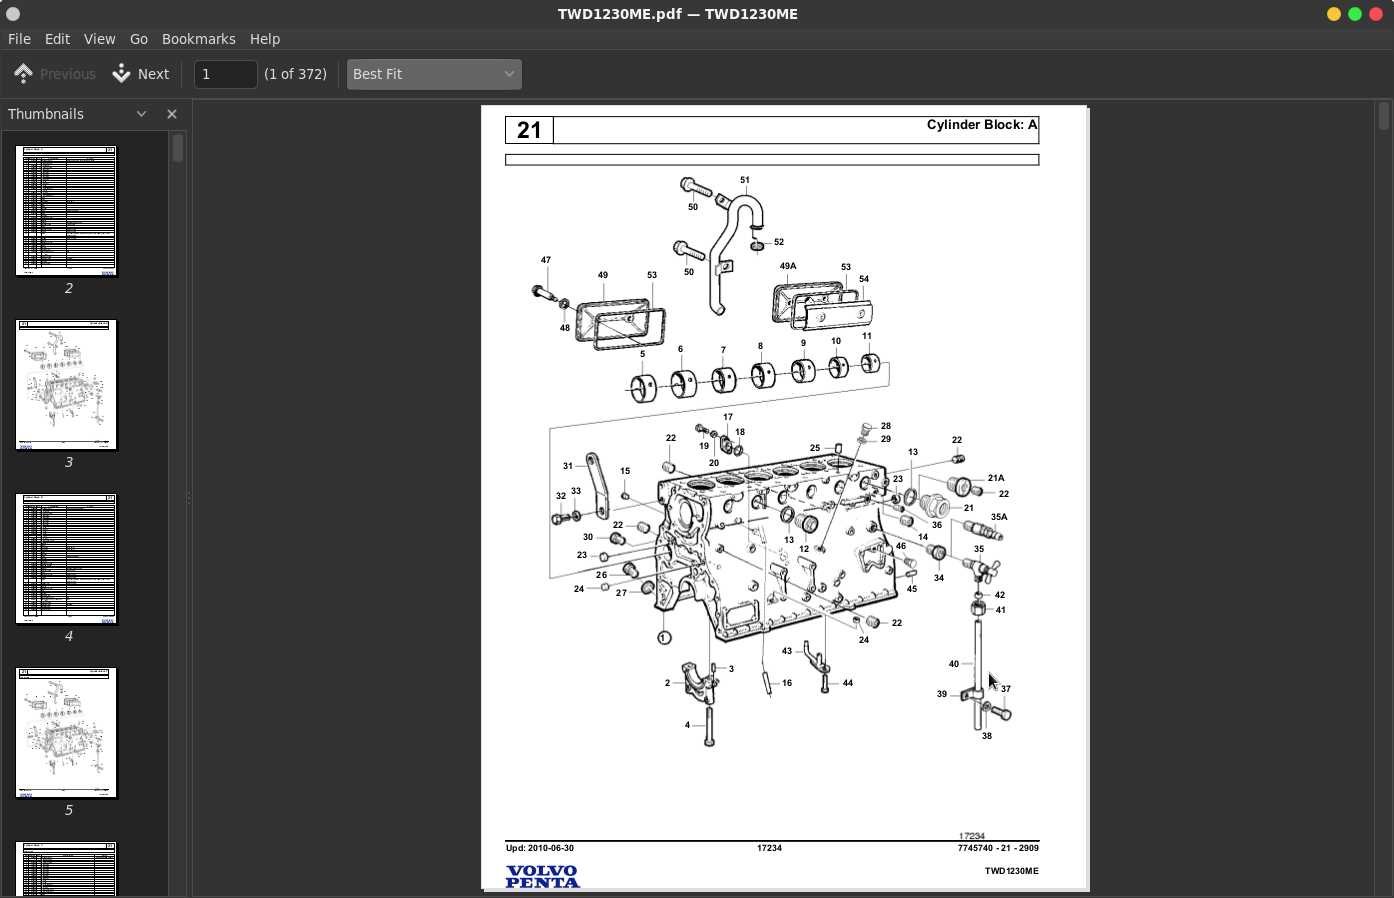 volvo penta industrial engines twd1230me parts catalog